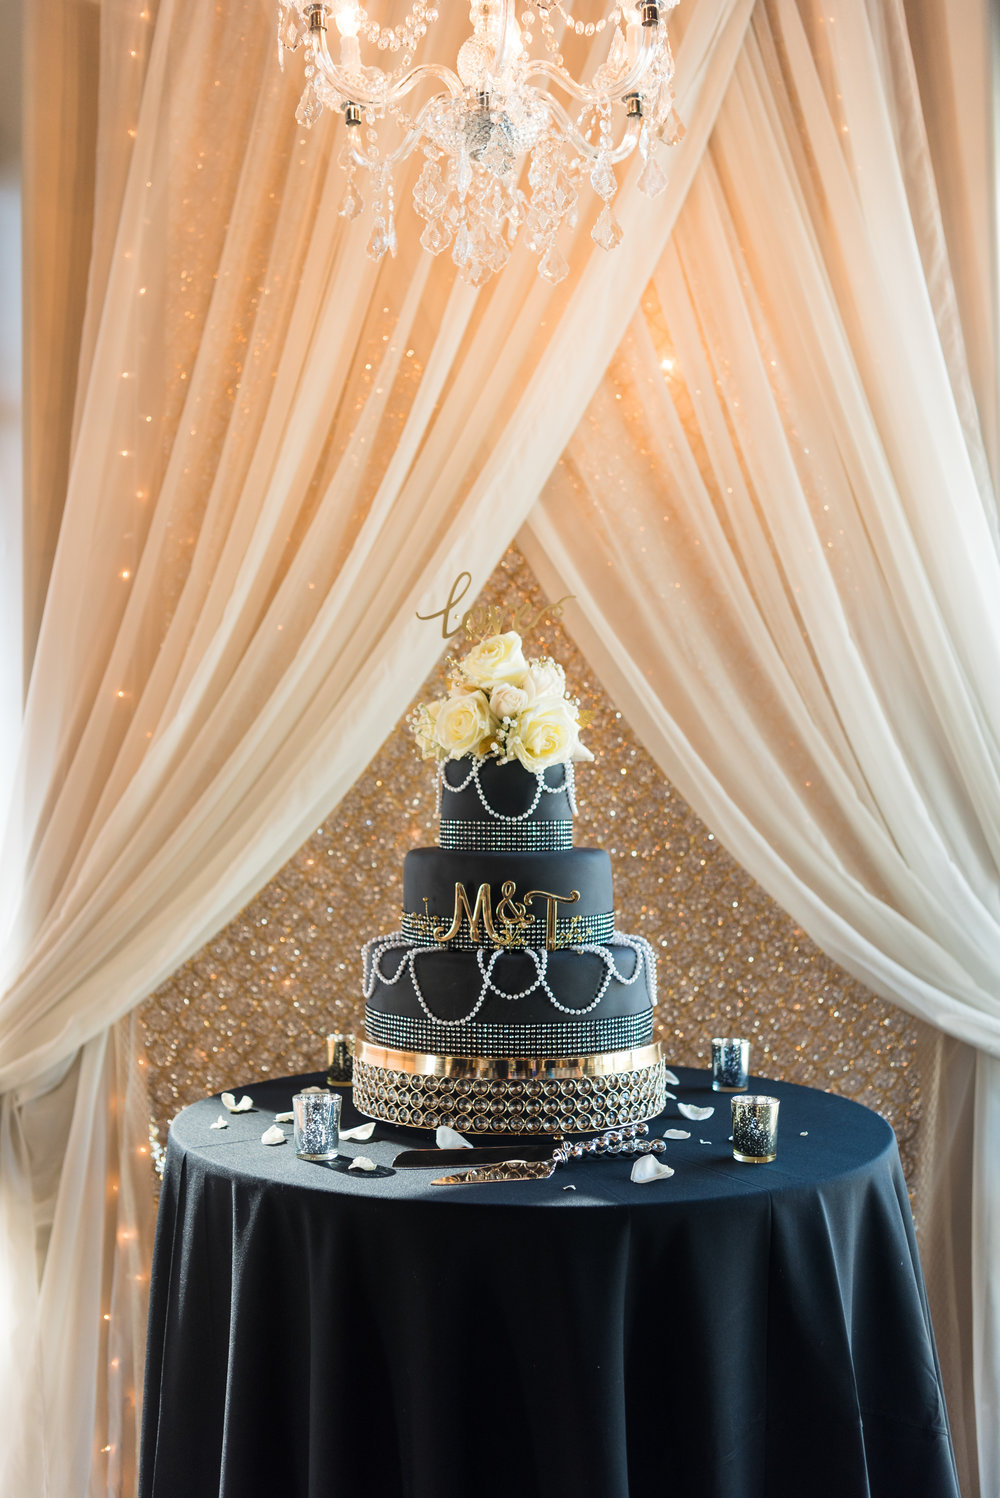 Great Gatsby Wedding Cake, Black Wedding Cake